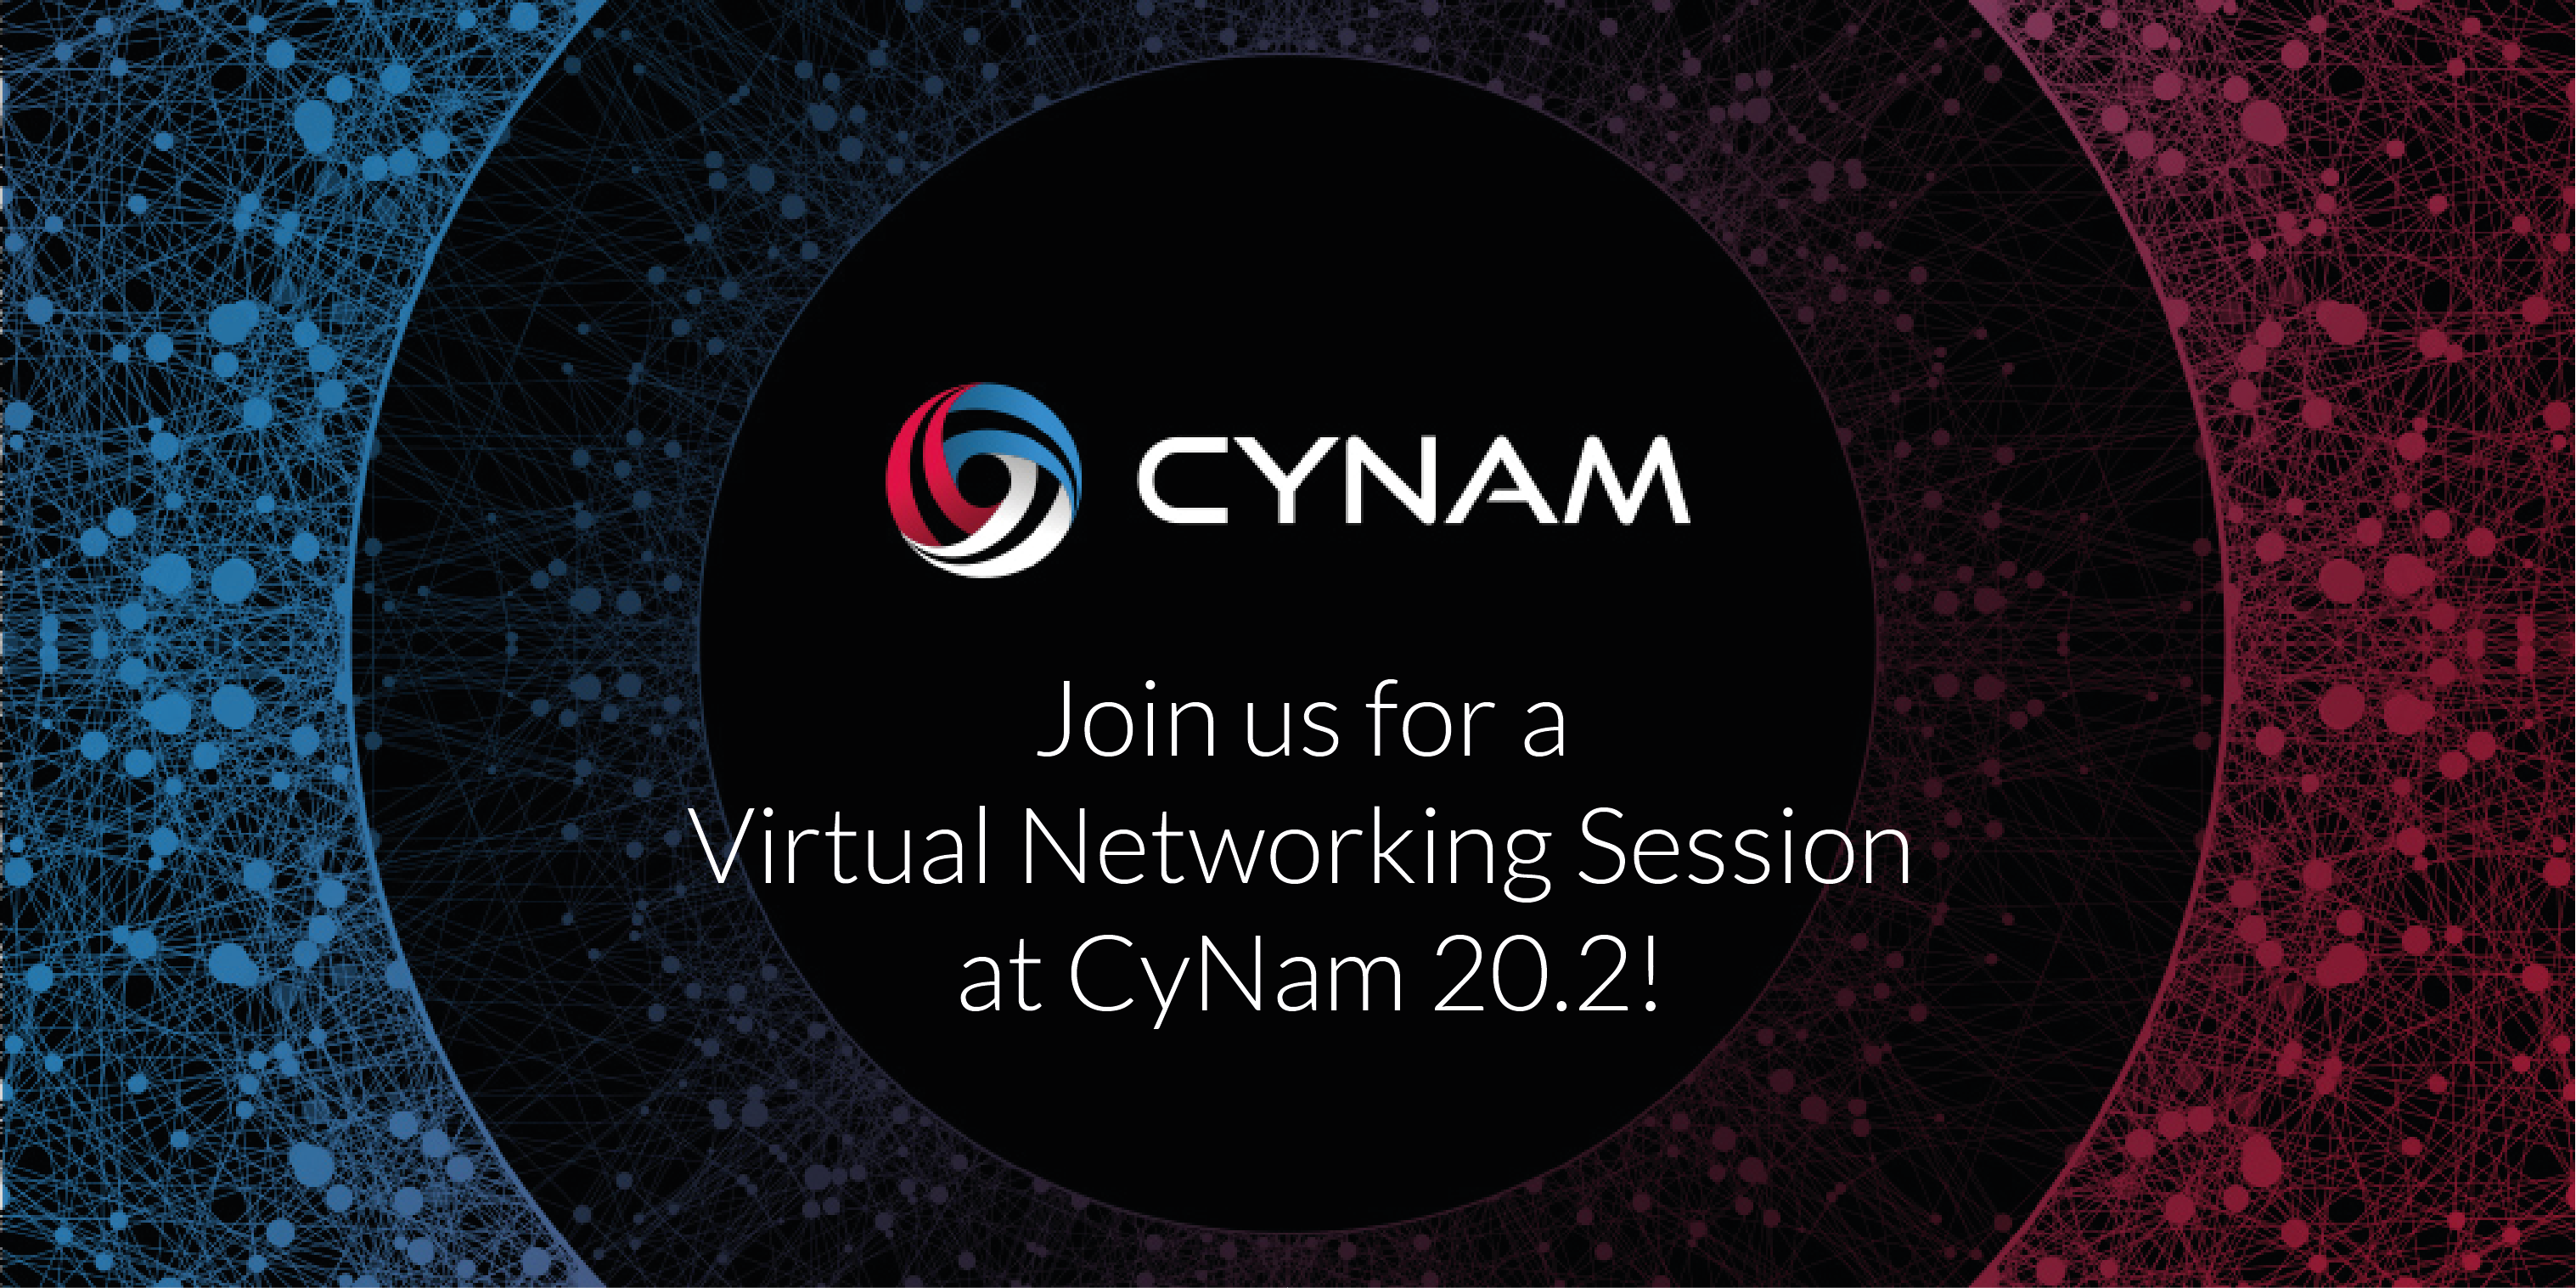 Cynam virtual networking image